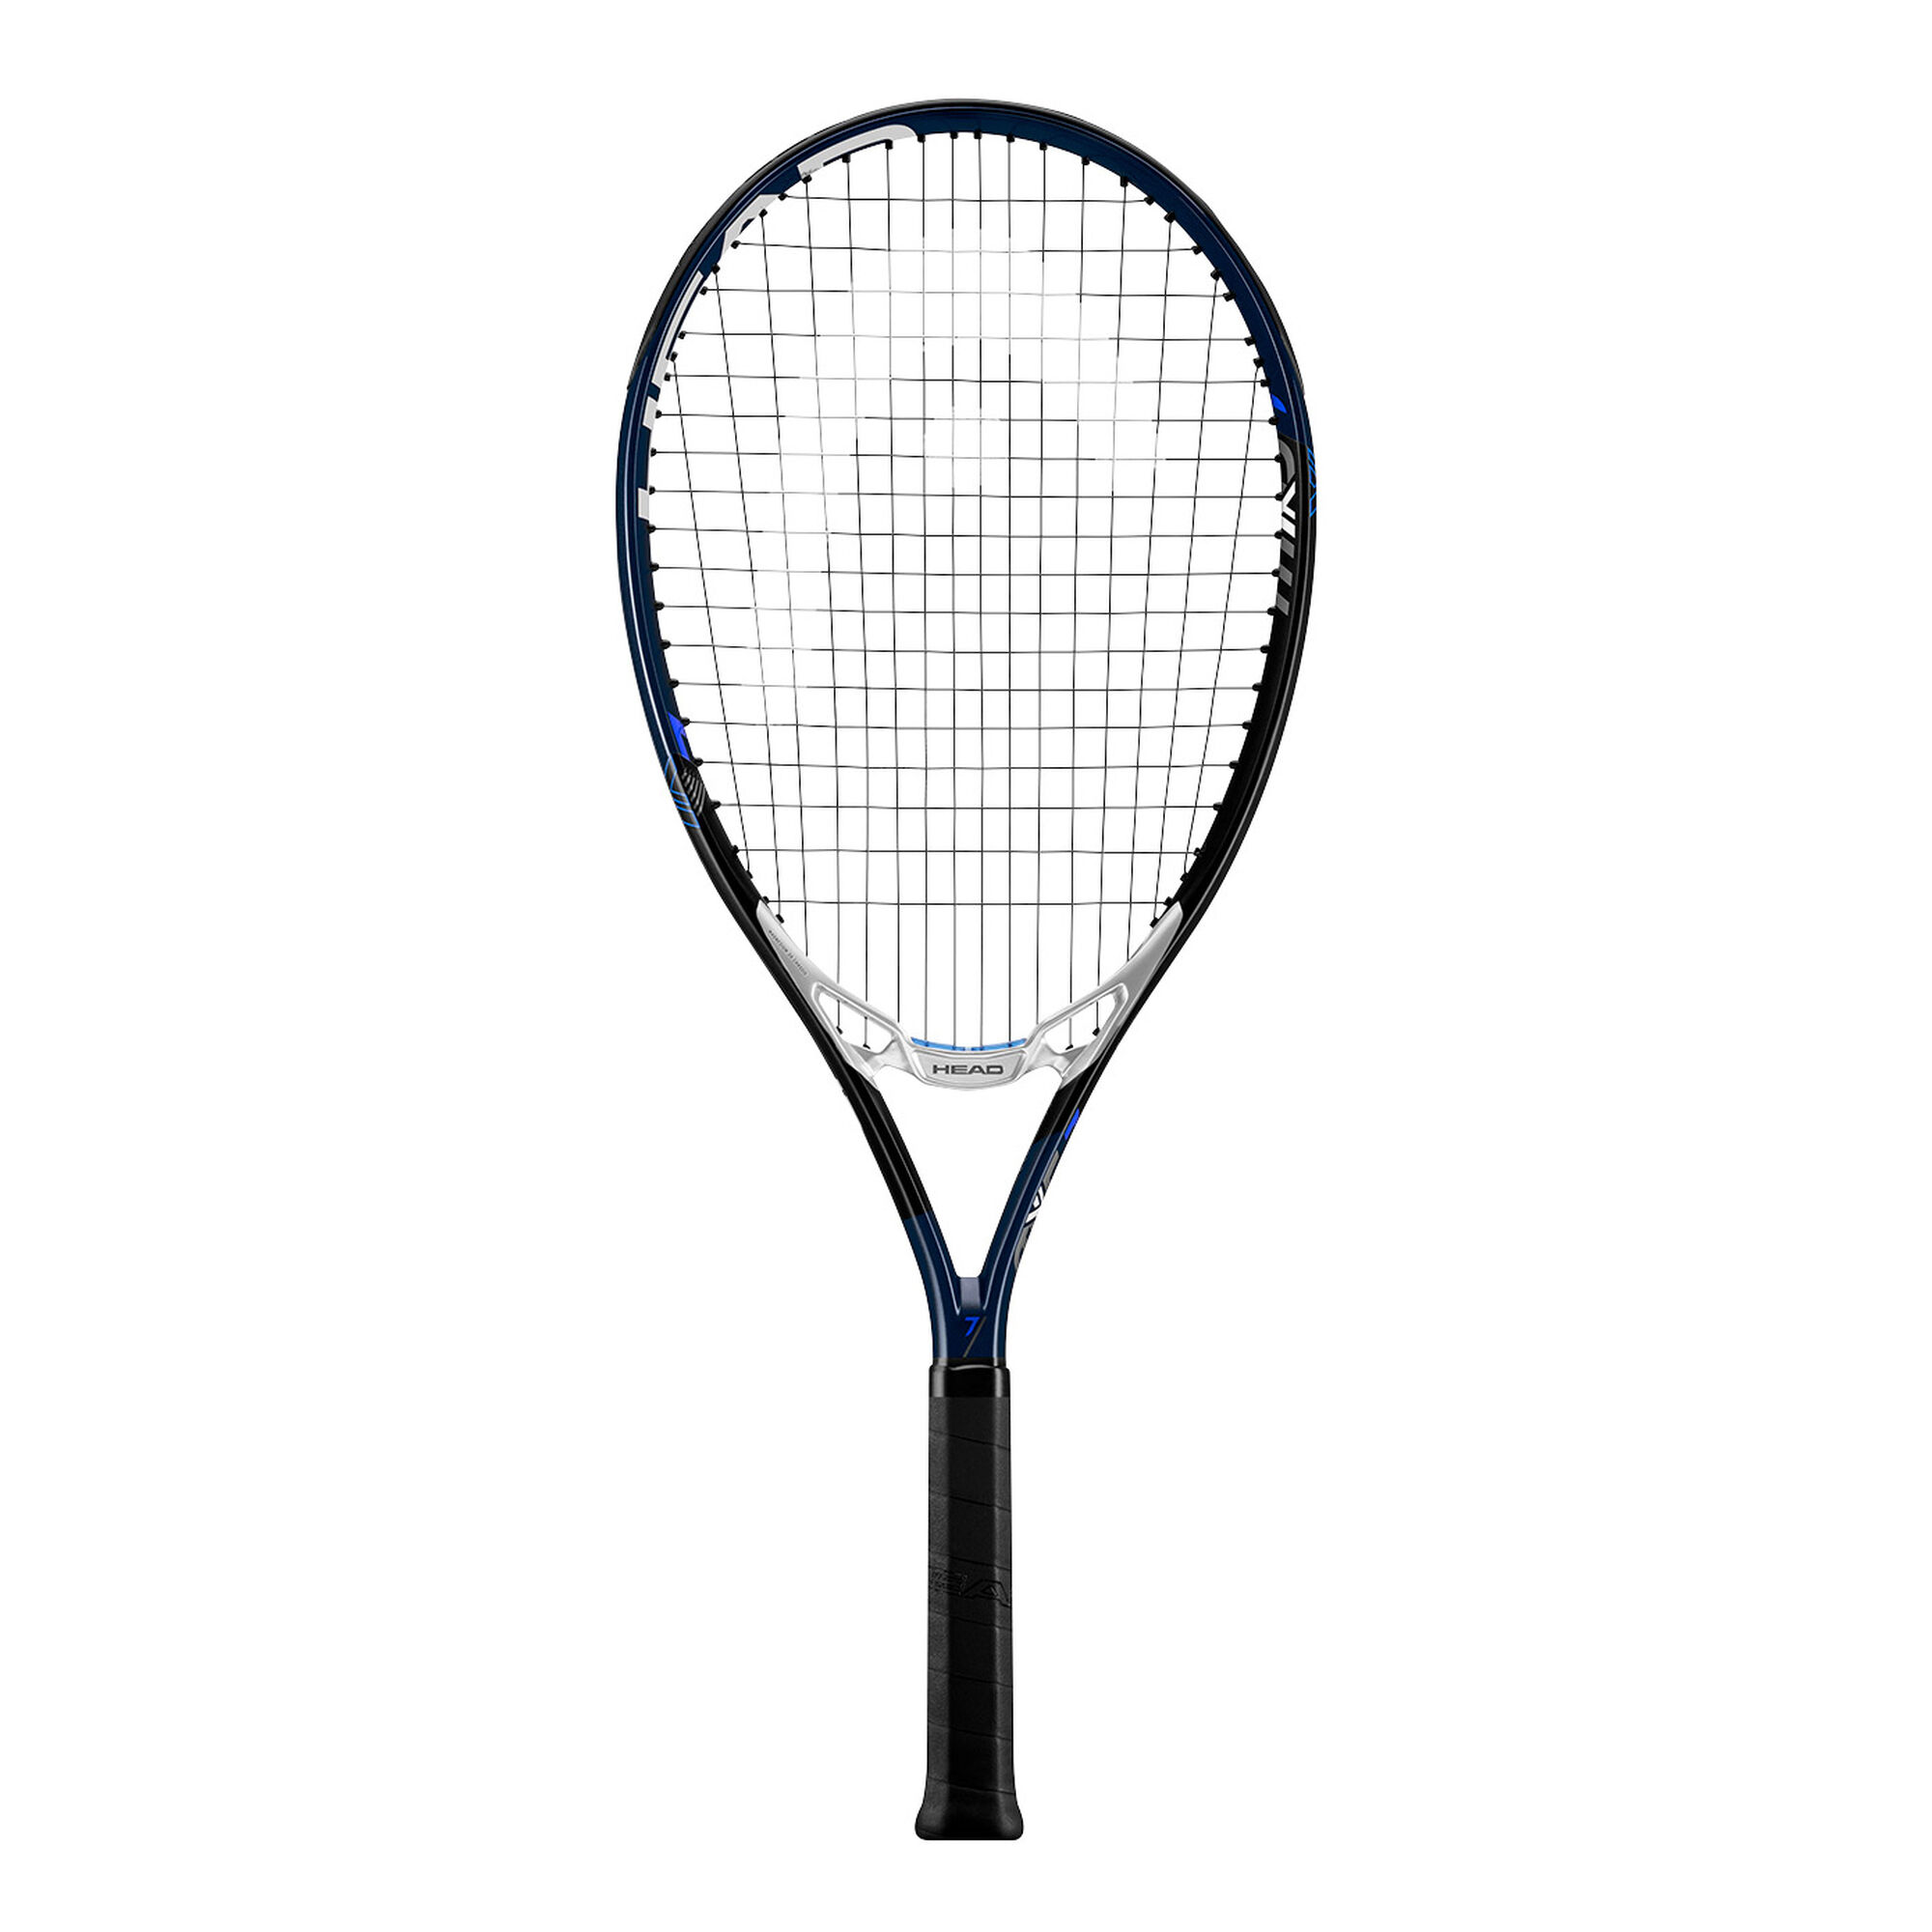 b8254a281 HEAD MXG 7 compra online | Tennis-Point